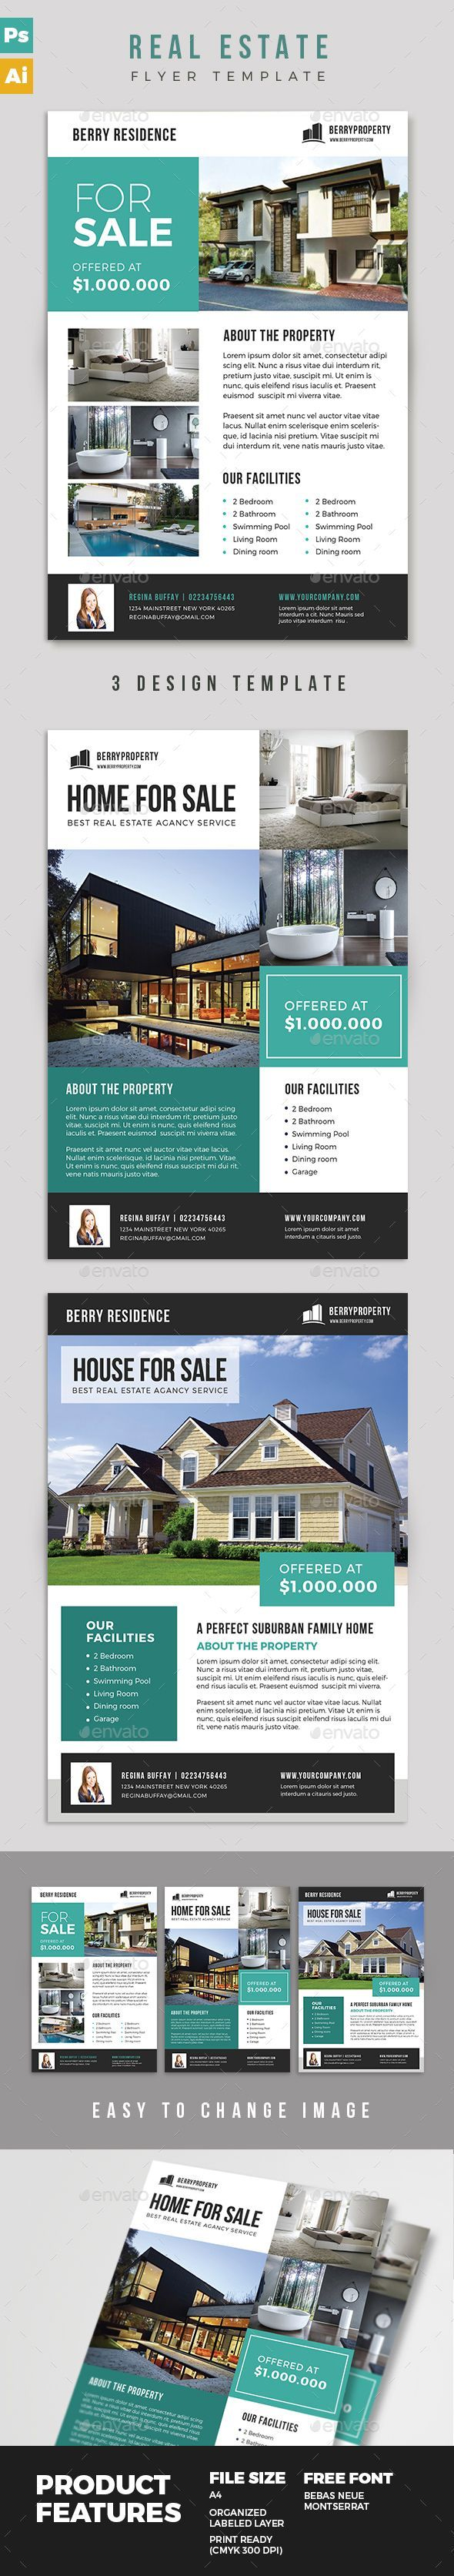 Real Estate Template%0A  Real Estate Flyer  Corporate Business Cards Download here   https   graphicriver